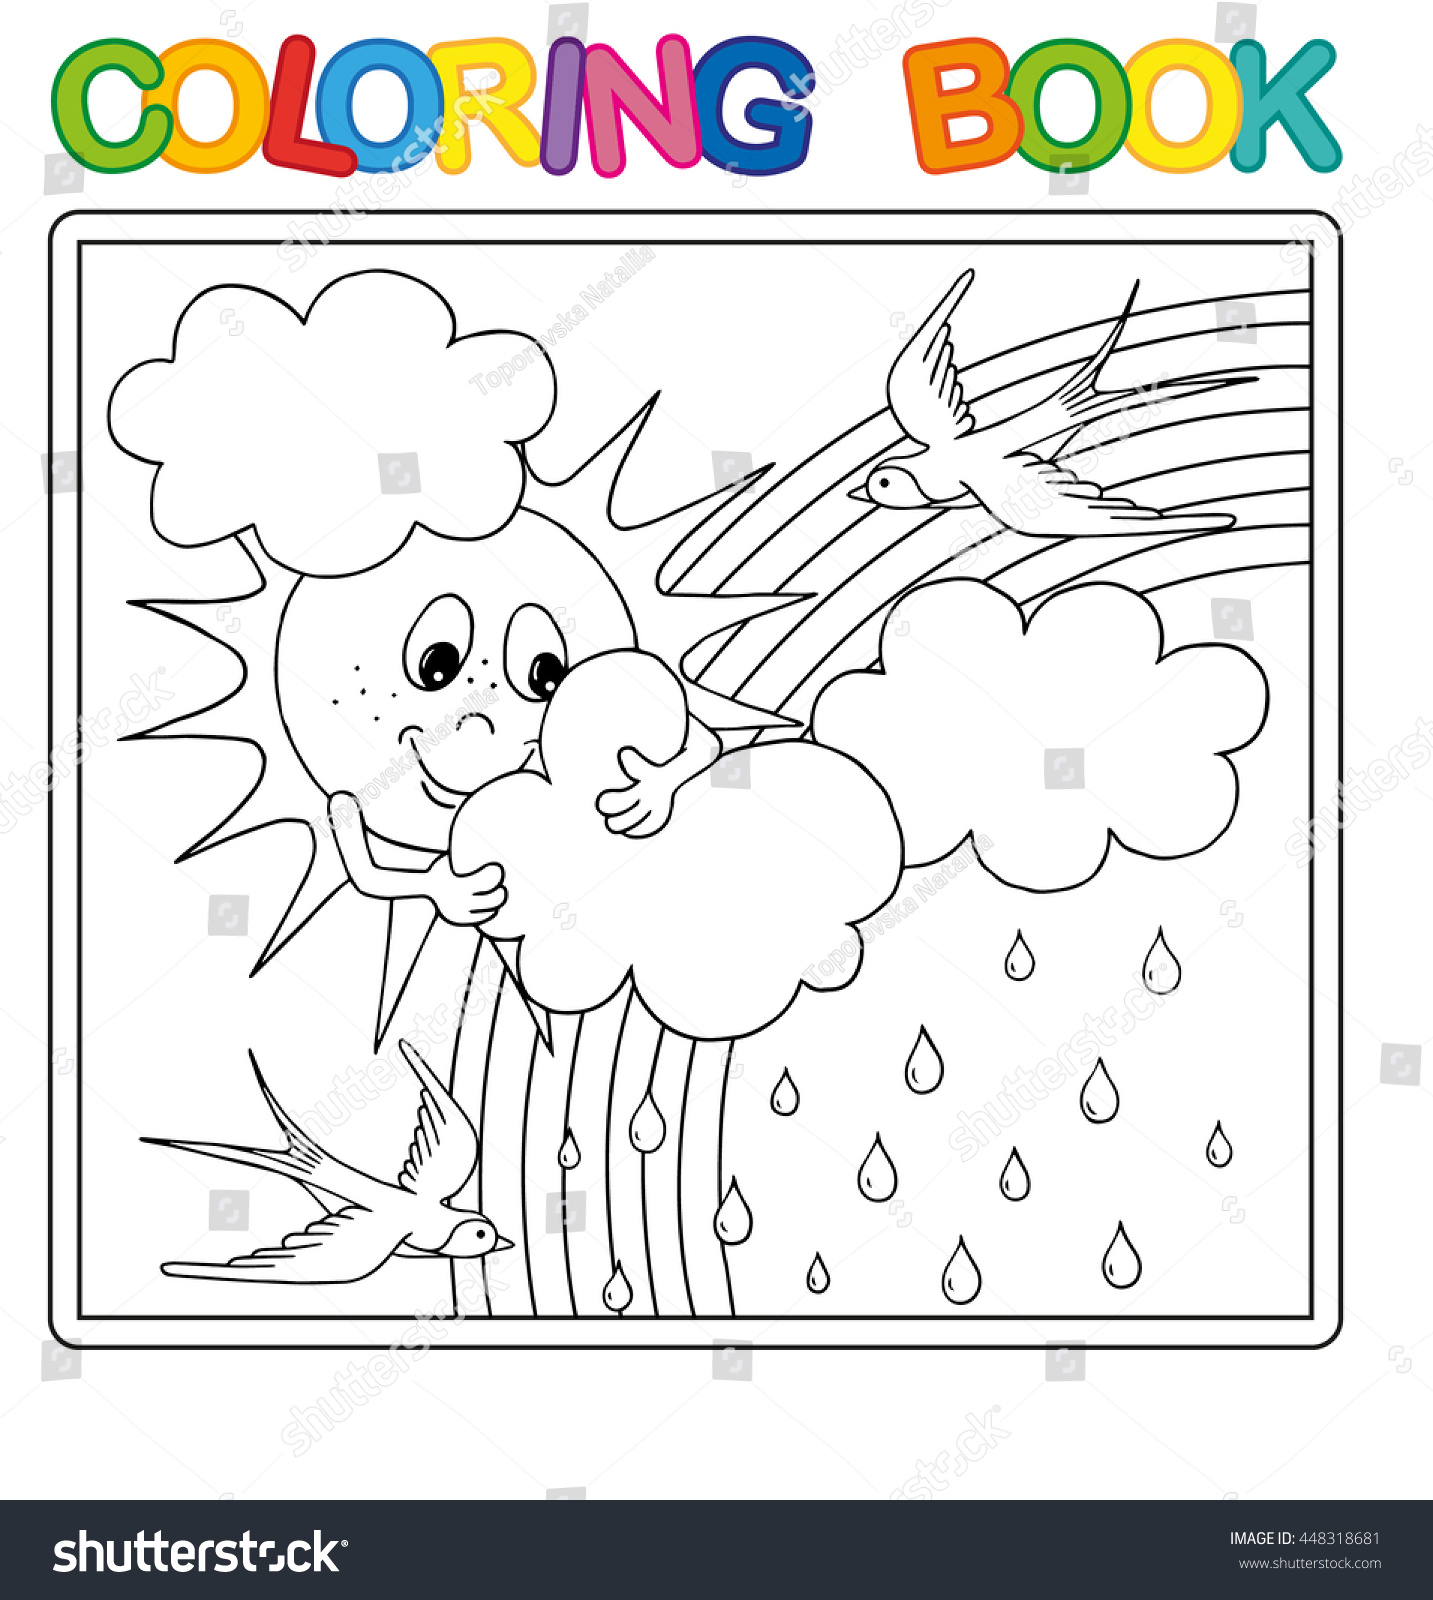 Rainbow and rain coloring pages - Vector Coloring Book Page For Children Funny Sun Behind The Clouds Rain And Rainbow